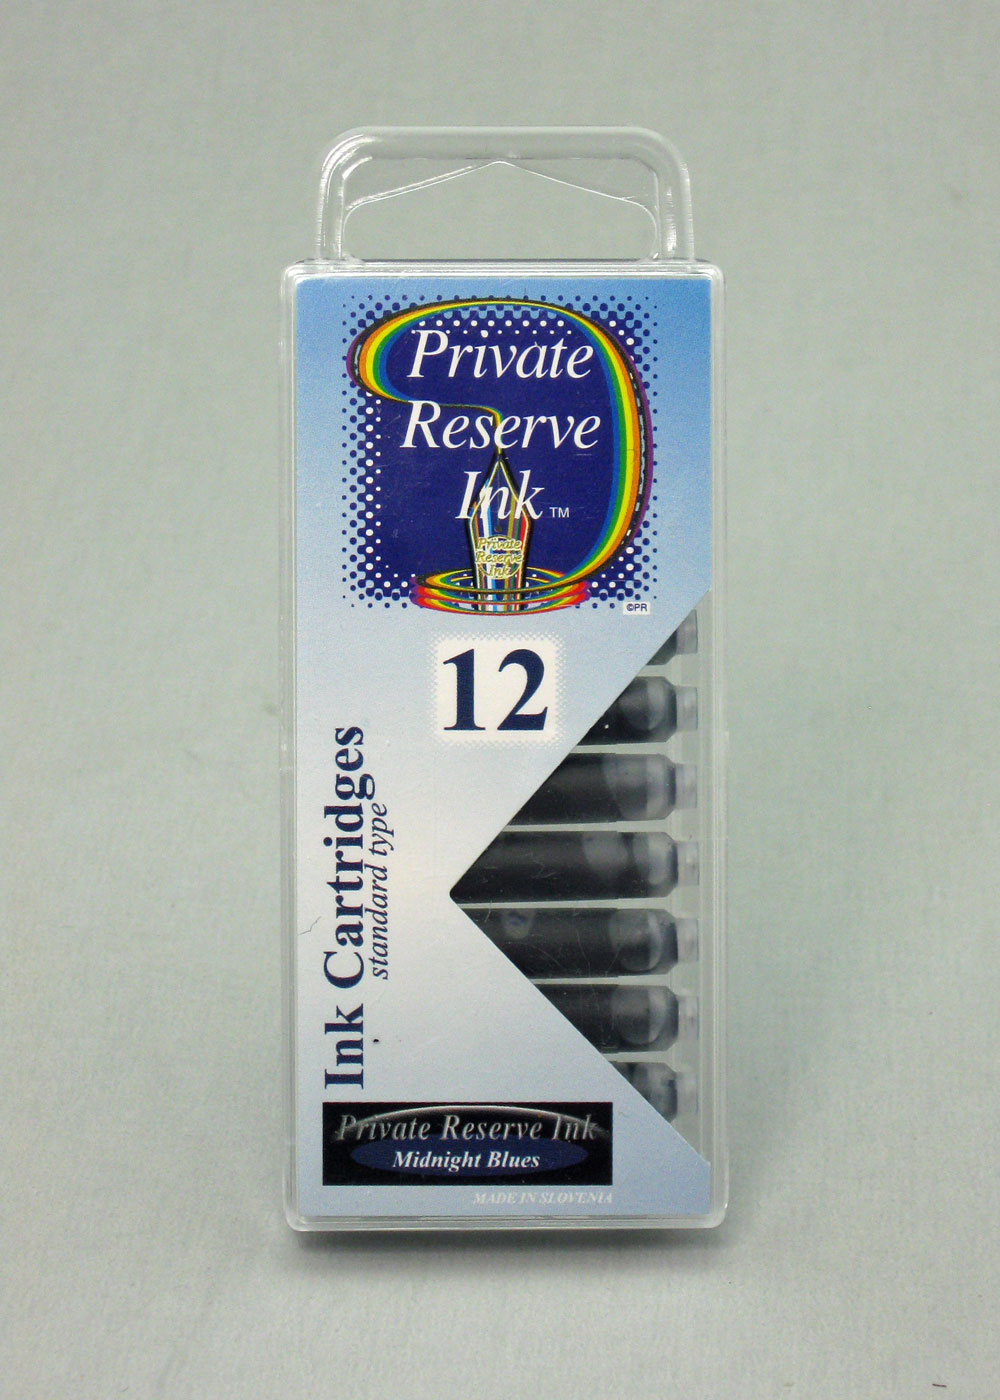 Private Reserve Midnight Blues Ink - Cartridges